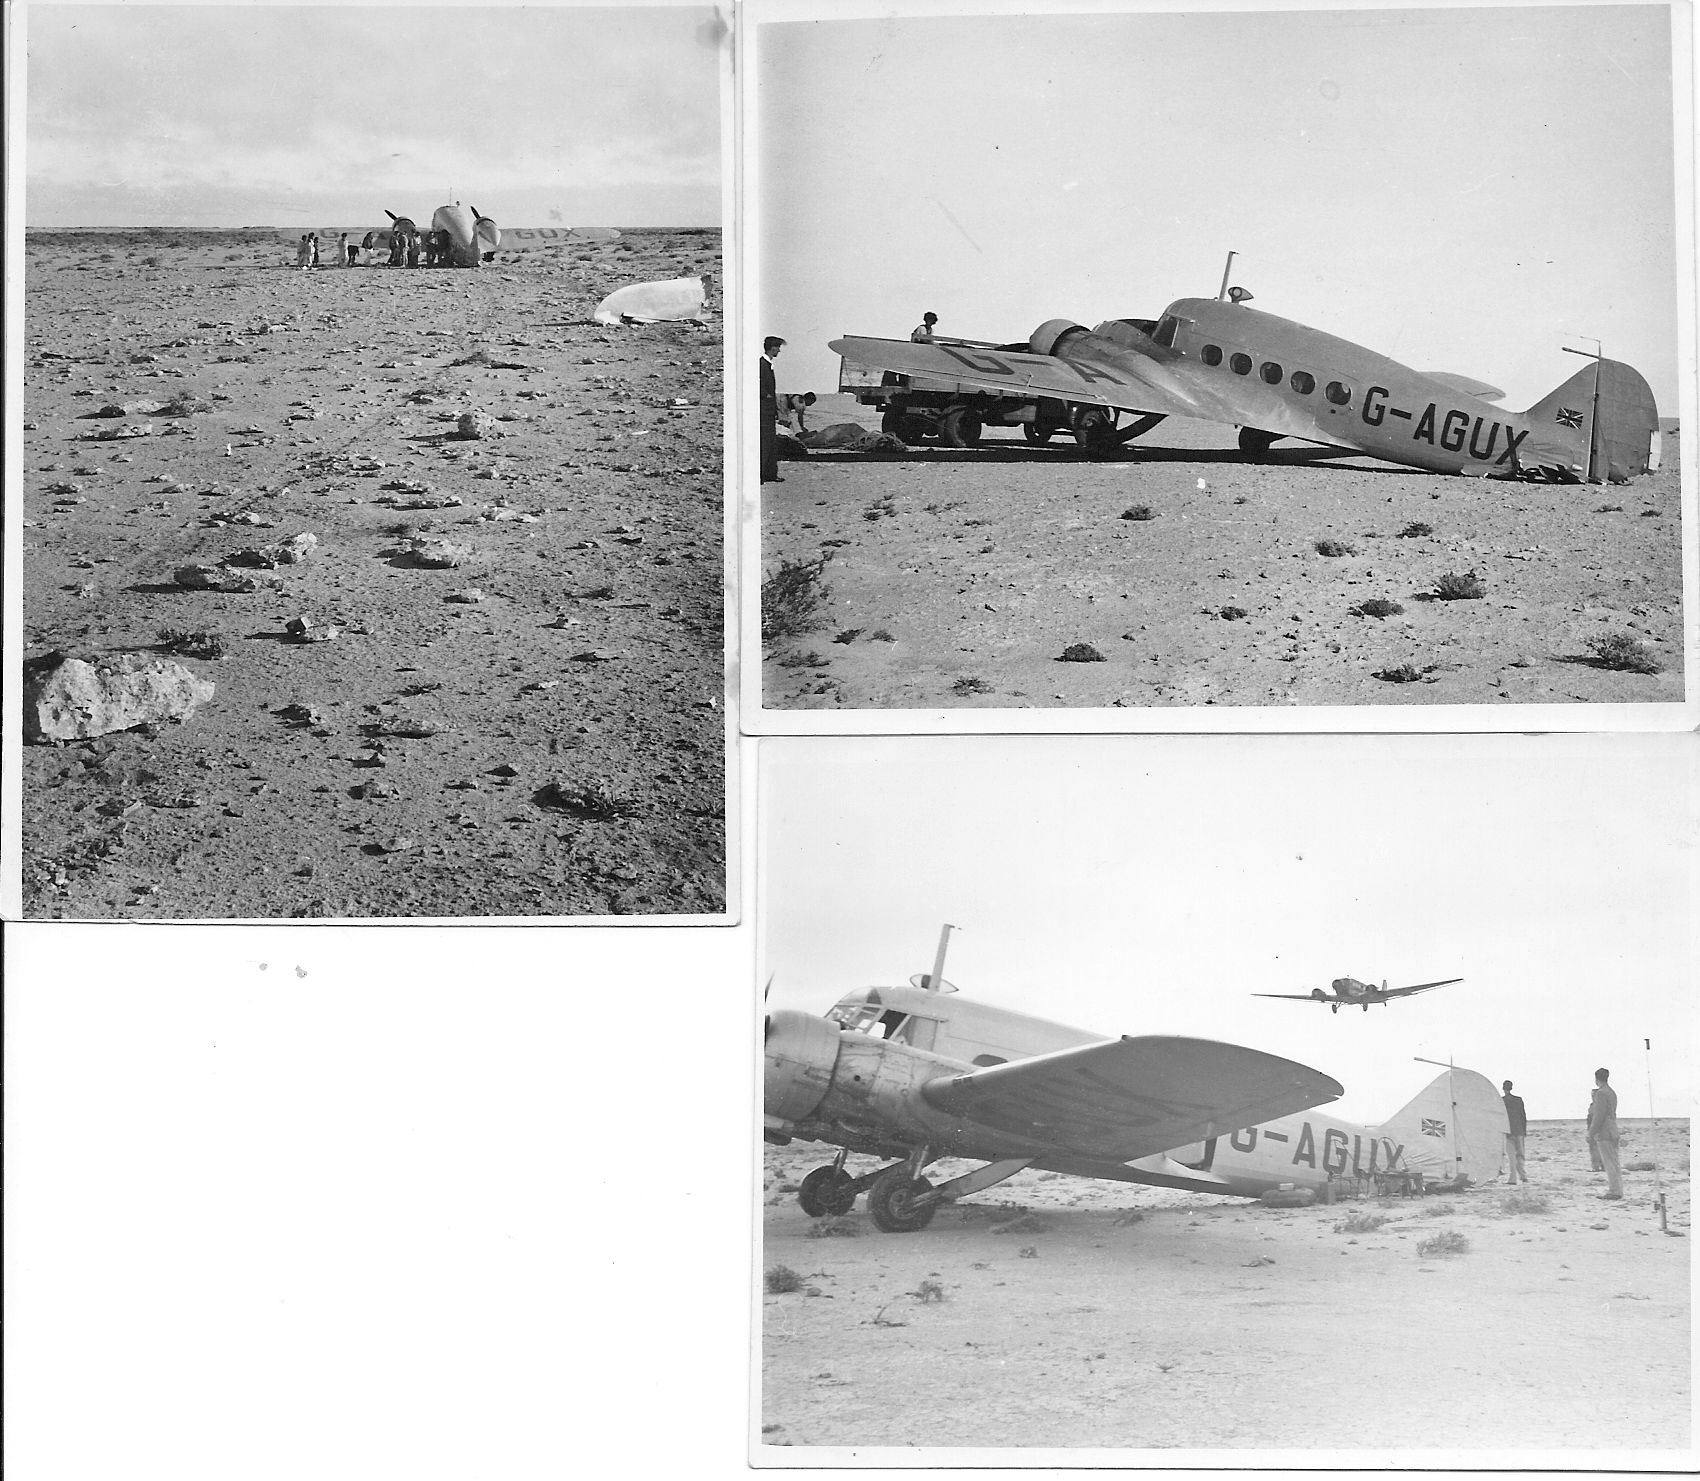 This is half the story of an unfortunate incident with an Avro Anson.  No date or location given